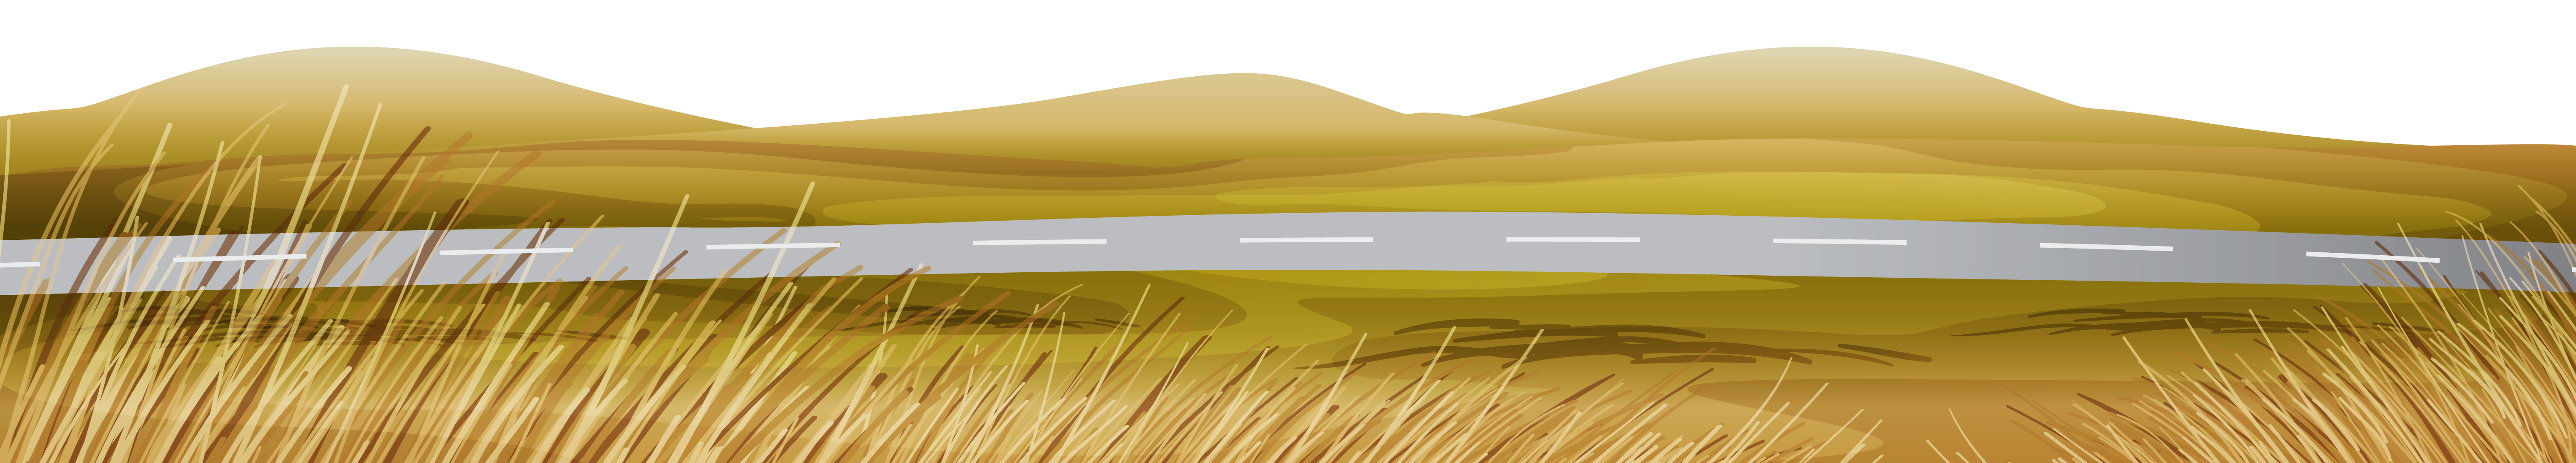 Fall Asphalted Road with Fall Grass Ground PNG Clipart.